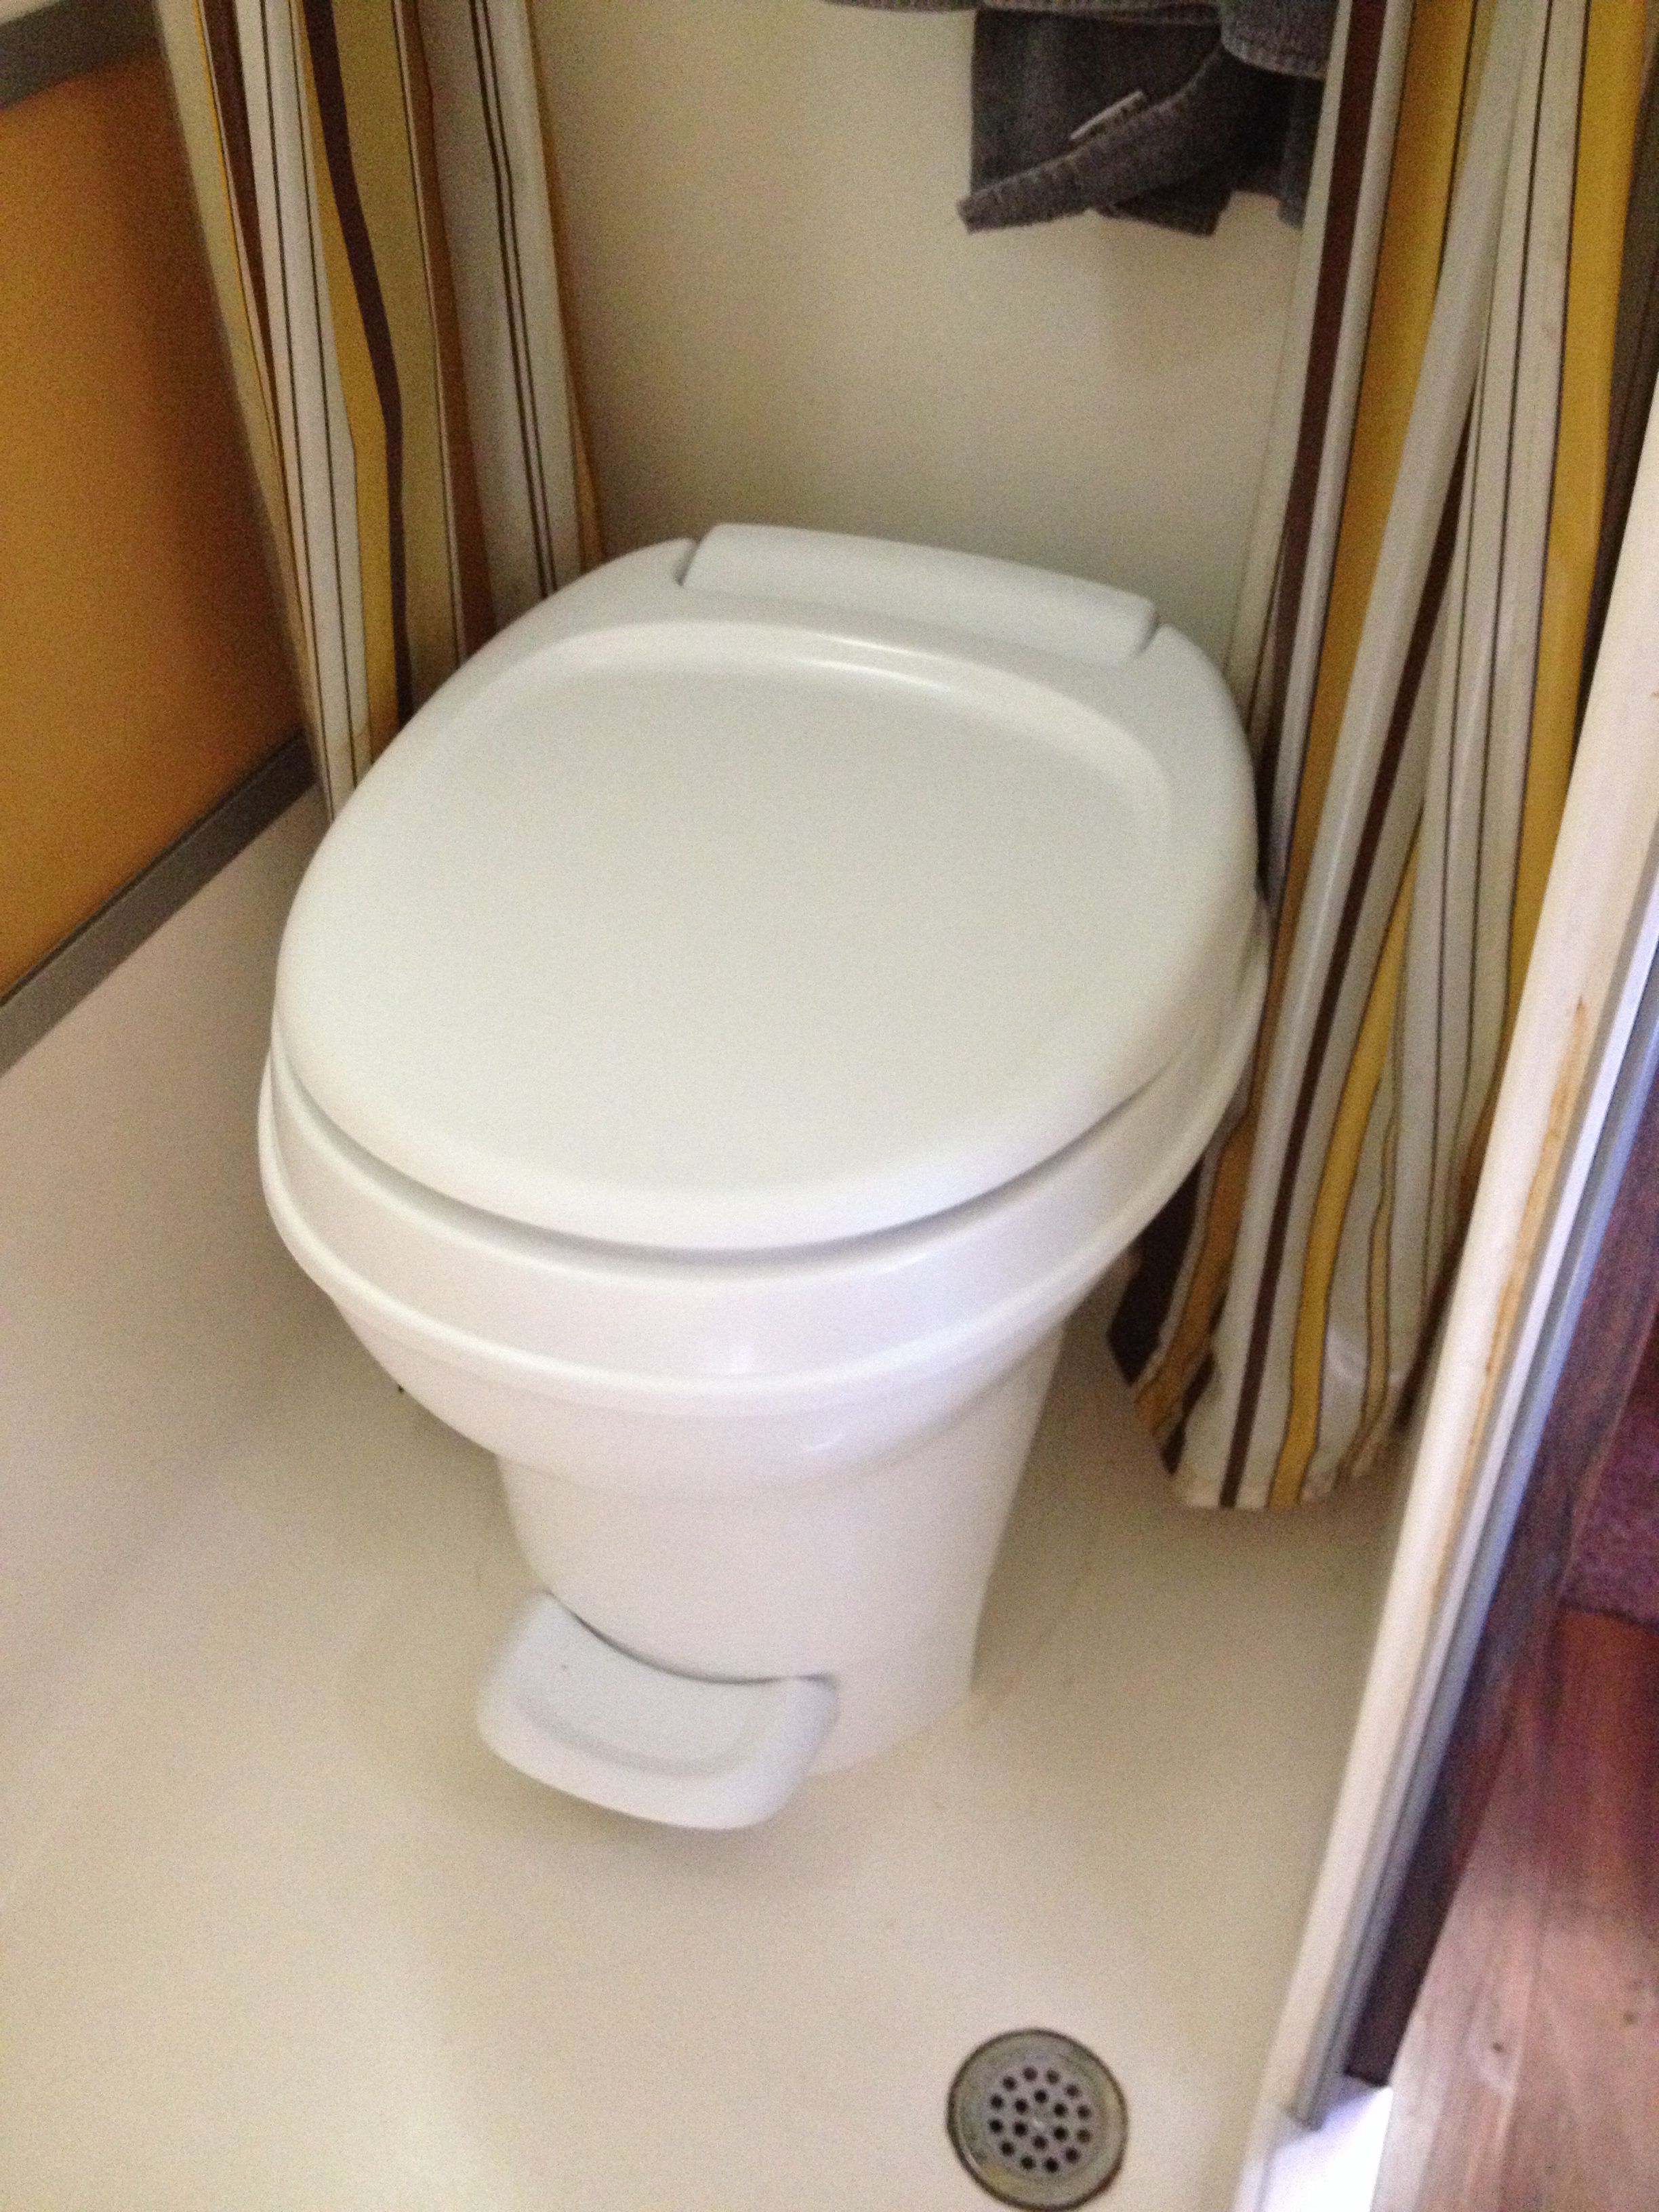 Ok, new toilet is in, much better. | 1975 GMC motorhome resoration ...